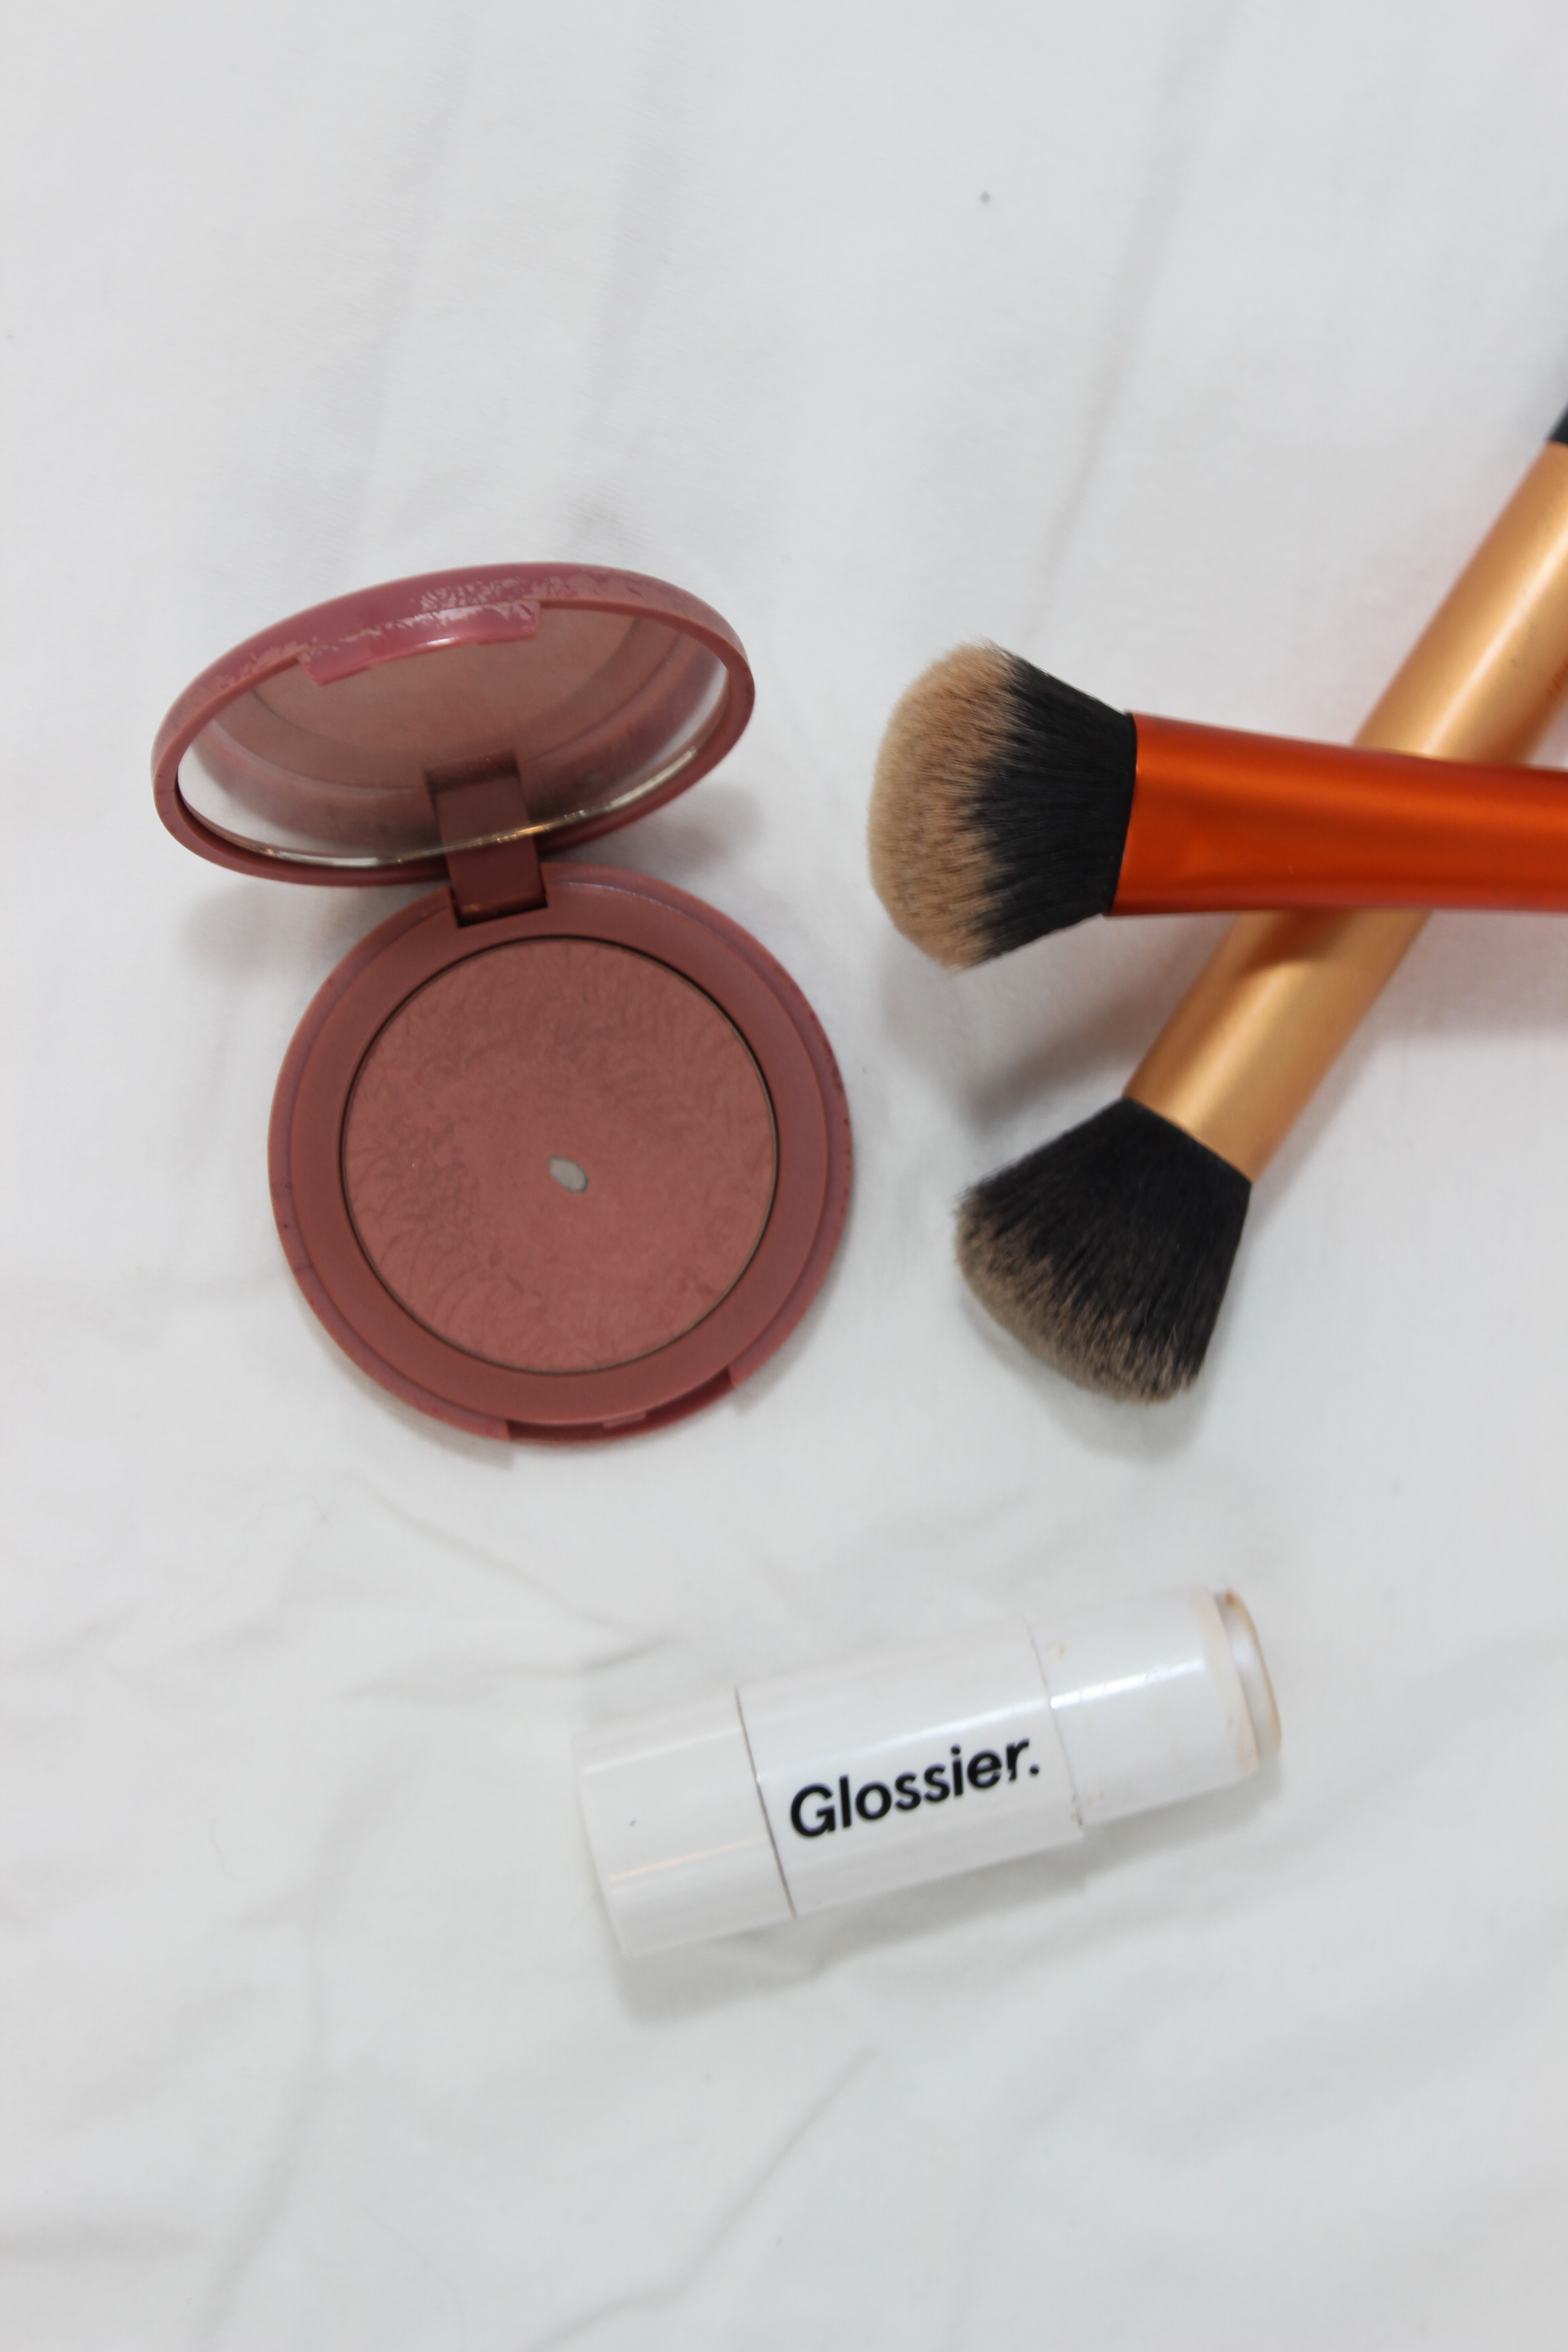 Tarte Amazonian Clay Blush in Exposed, Glossier Haloscope in Moonstone, Milk Makeup Bronzer in Baked